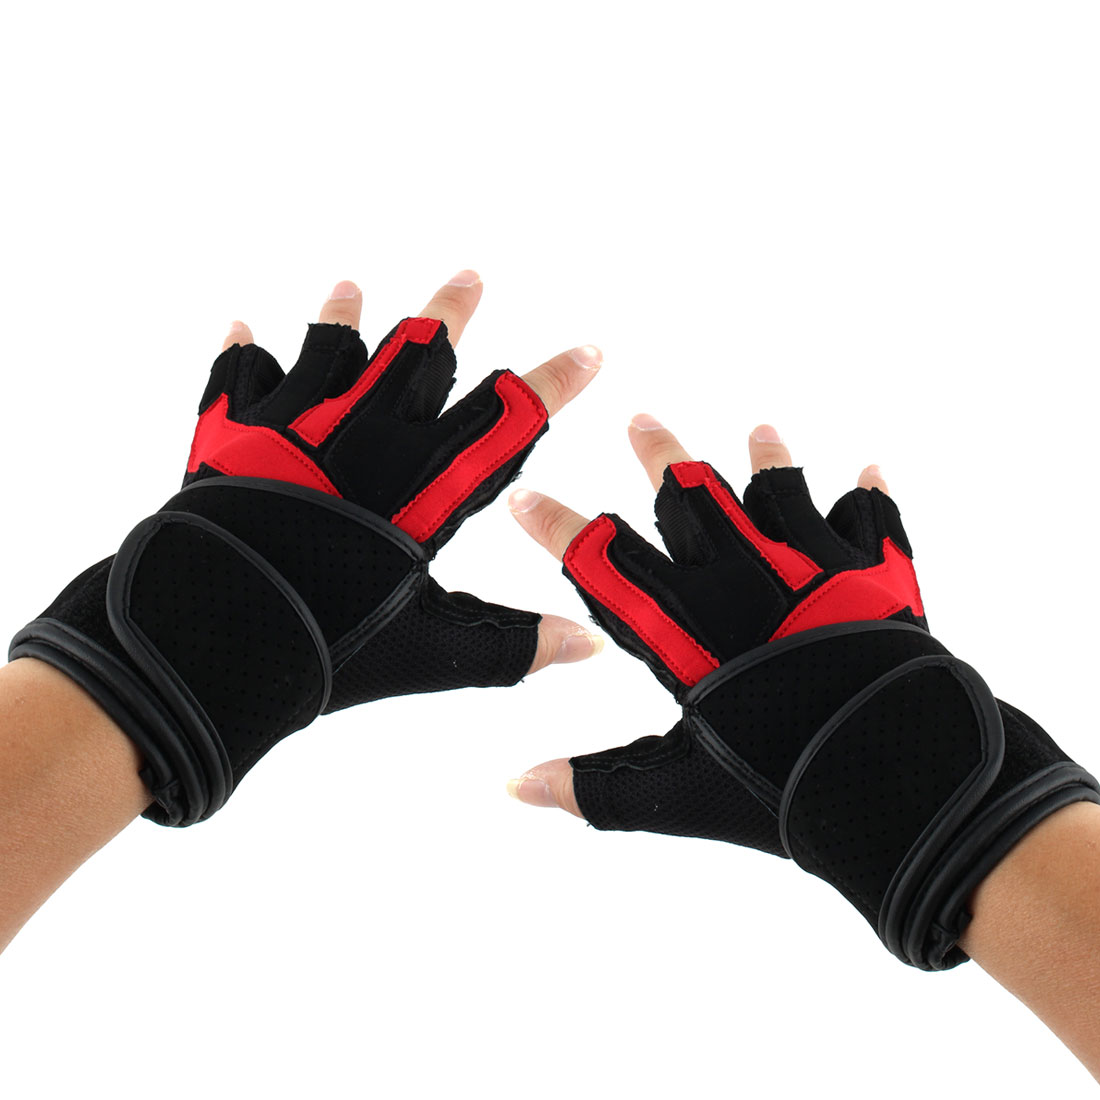 Men PU Leather Adjustable Sports Training Workout Half Finger Fitness Gloves Red XL Pair